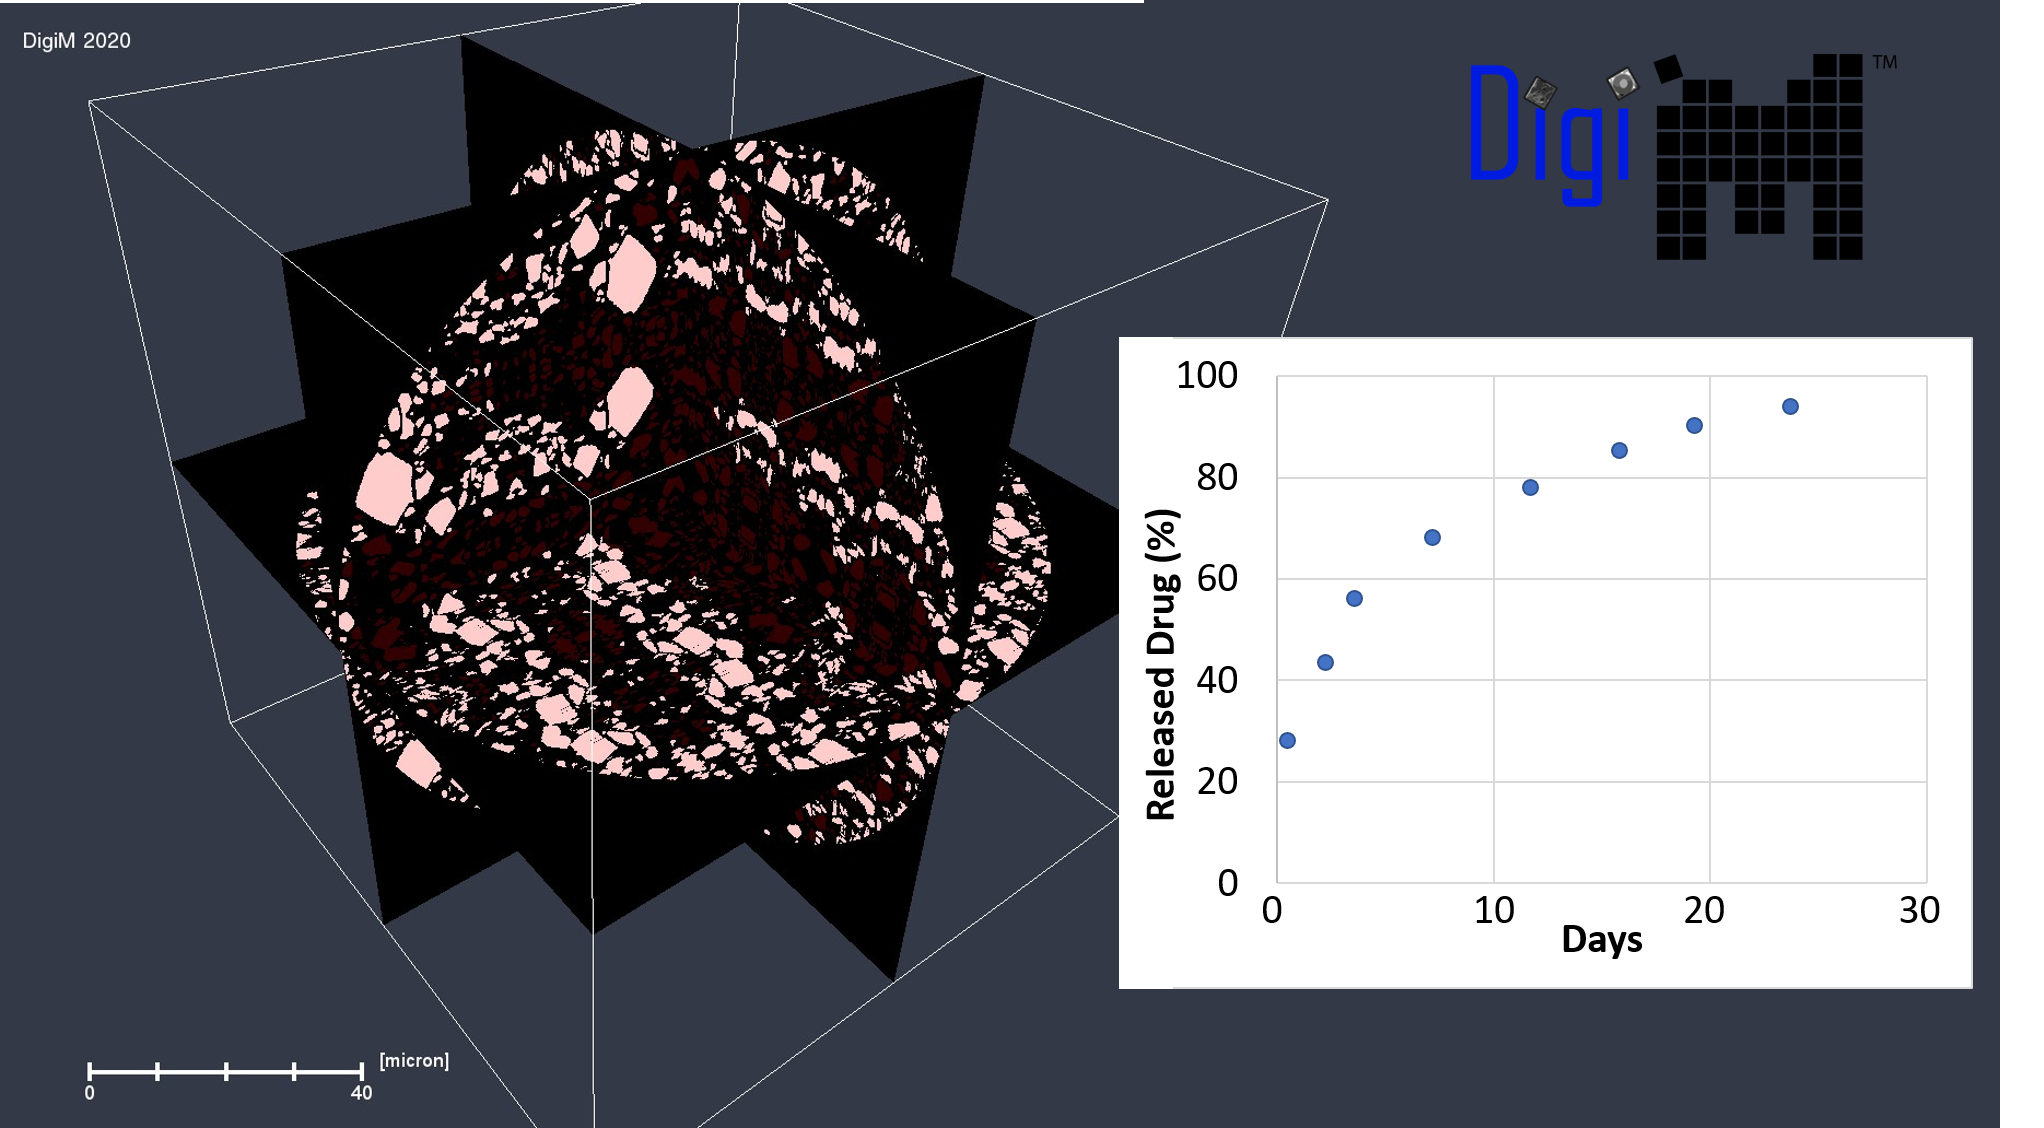 DigiM image-based release simulation for a PLGA microsphere used in long-acting injectables